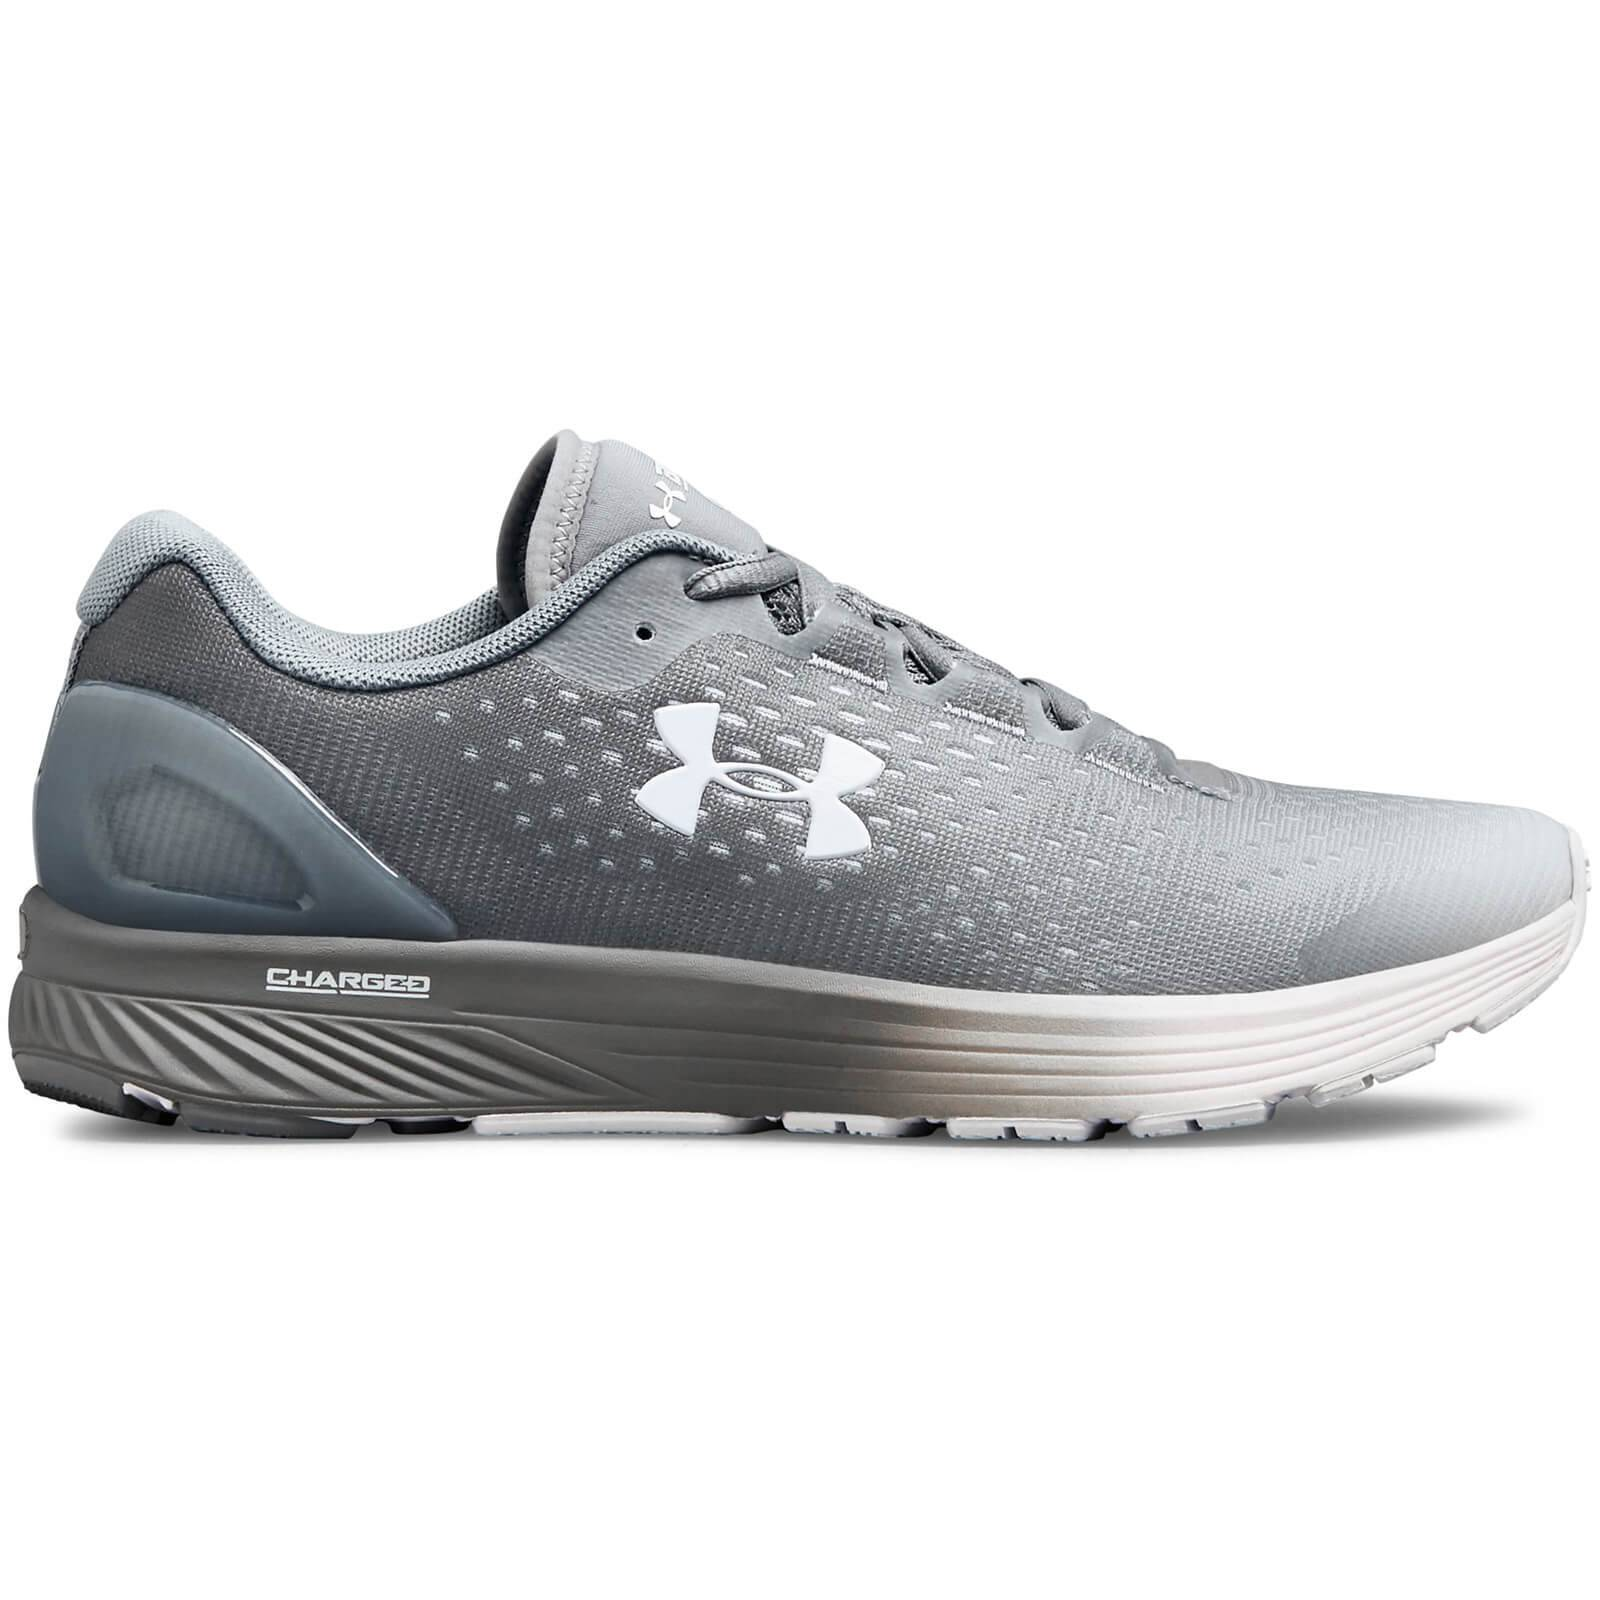 Under Armour Women's Charged Bandit 4 Running Shoes - White - US 8.5/UK 6 - White